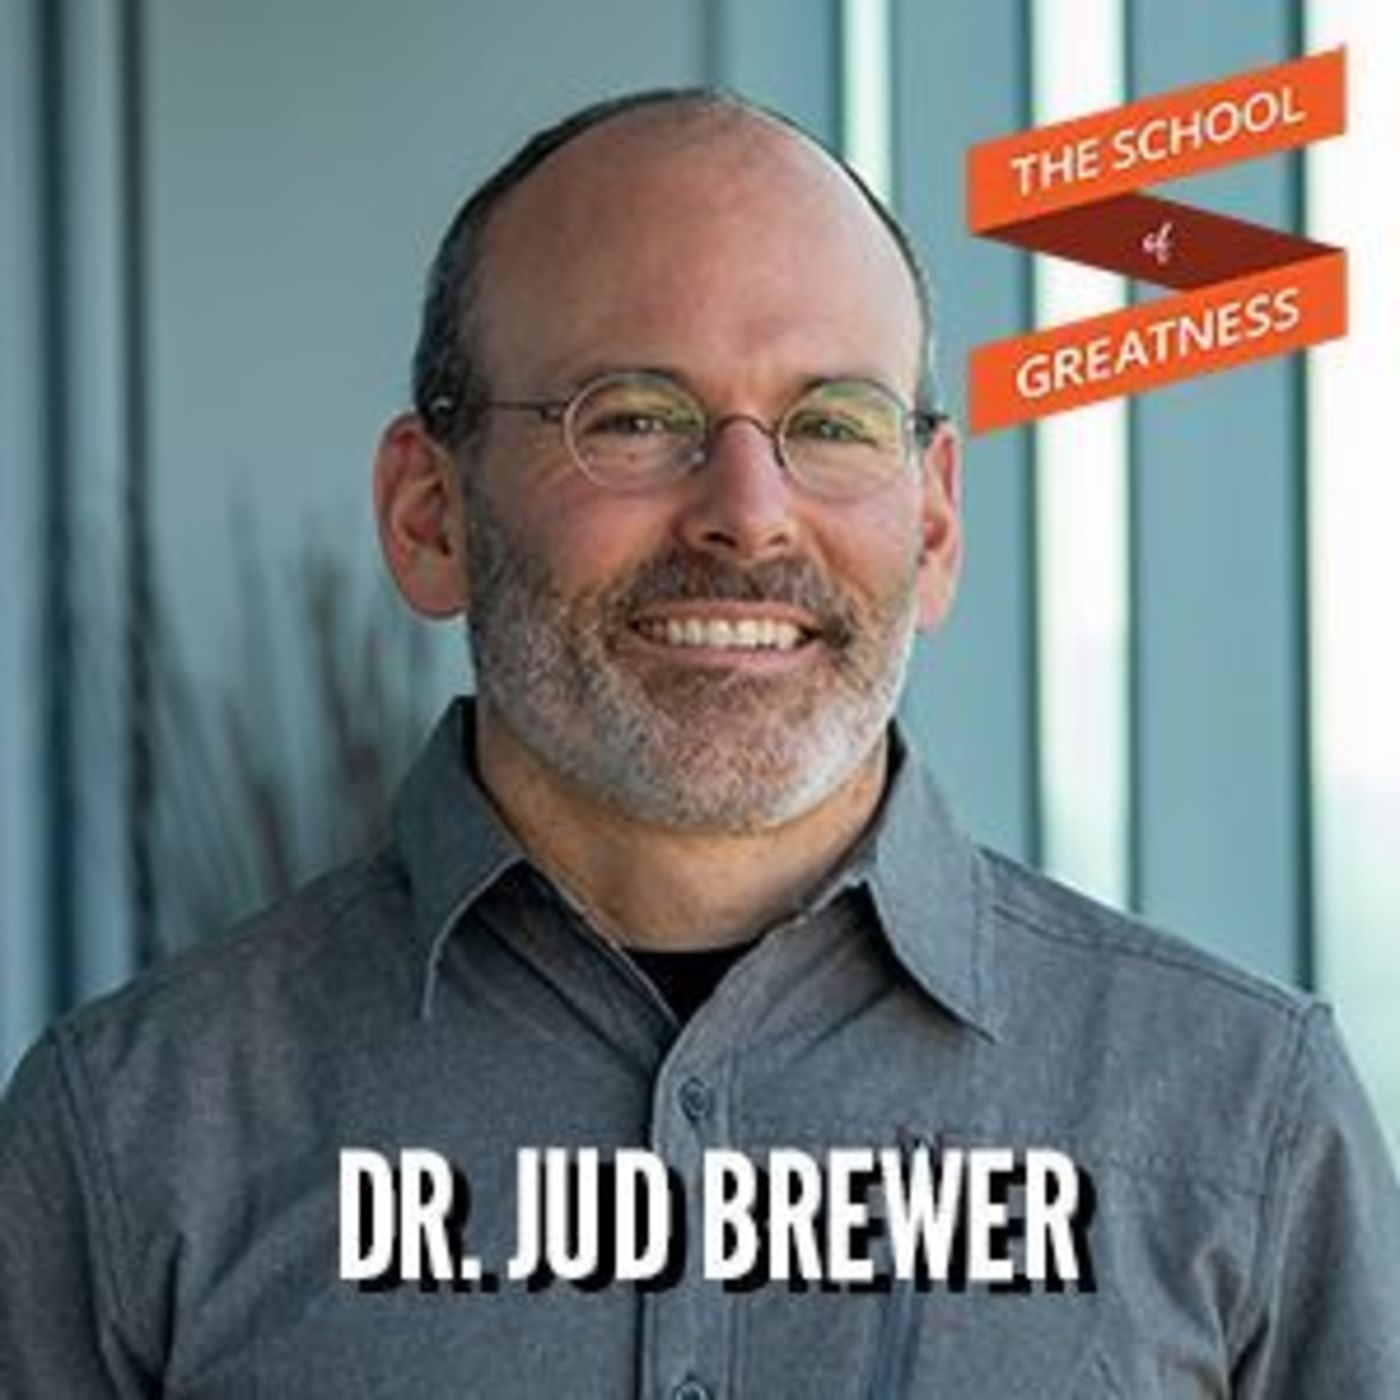 How to Build Life Changing Habits and Break Addiction with Dr. Jud Brewer